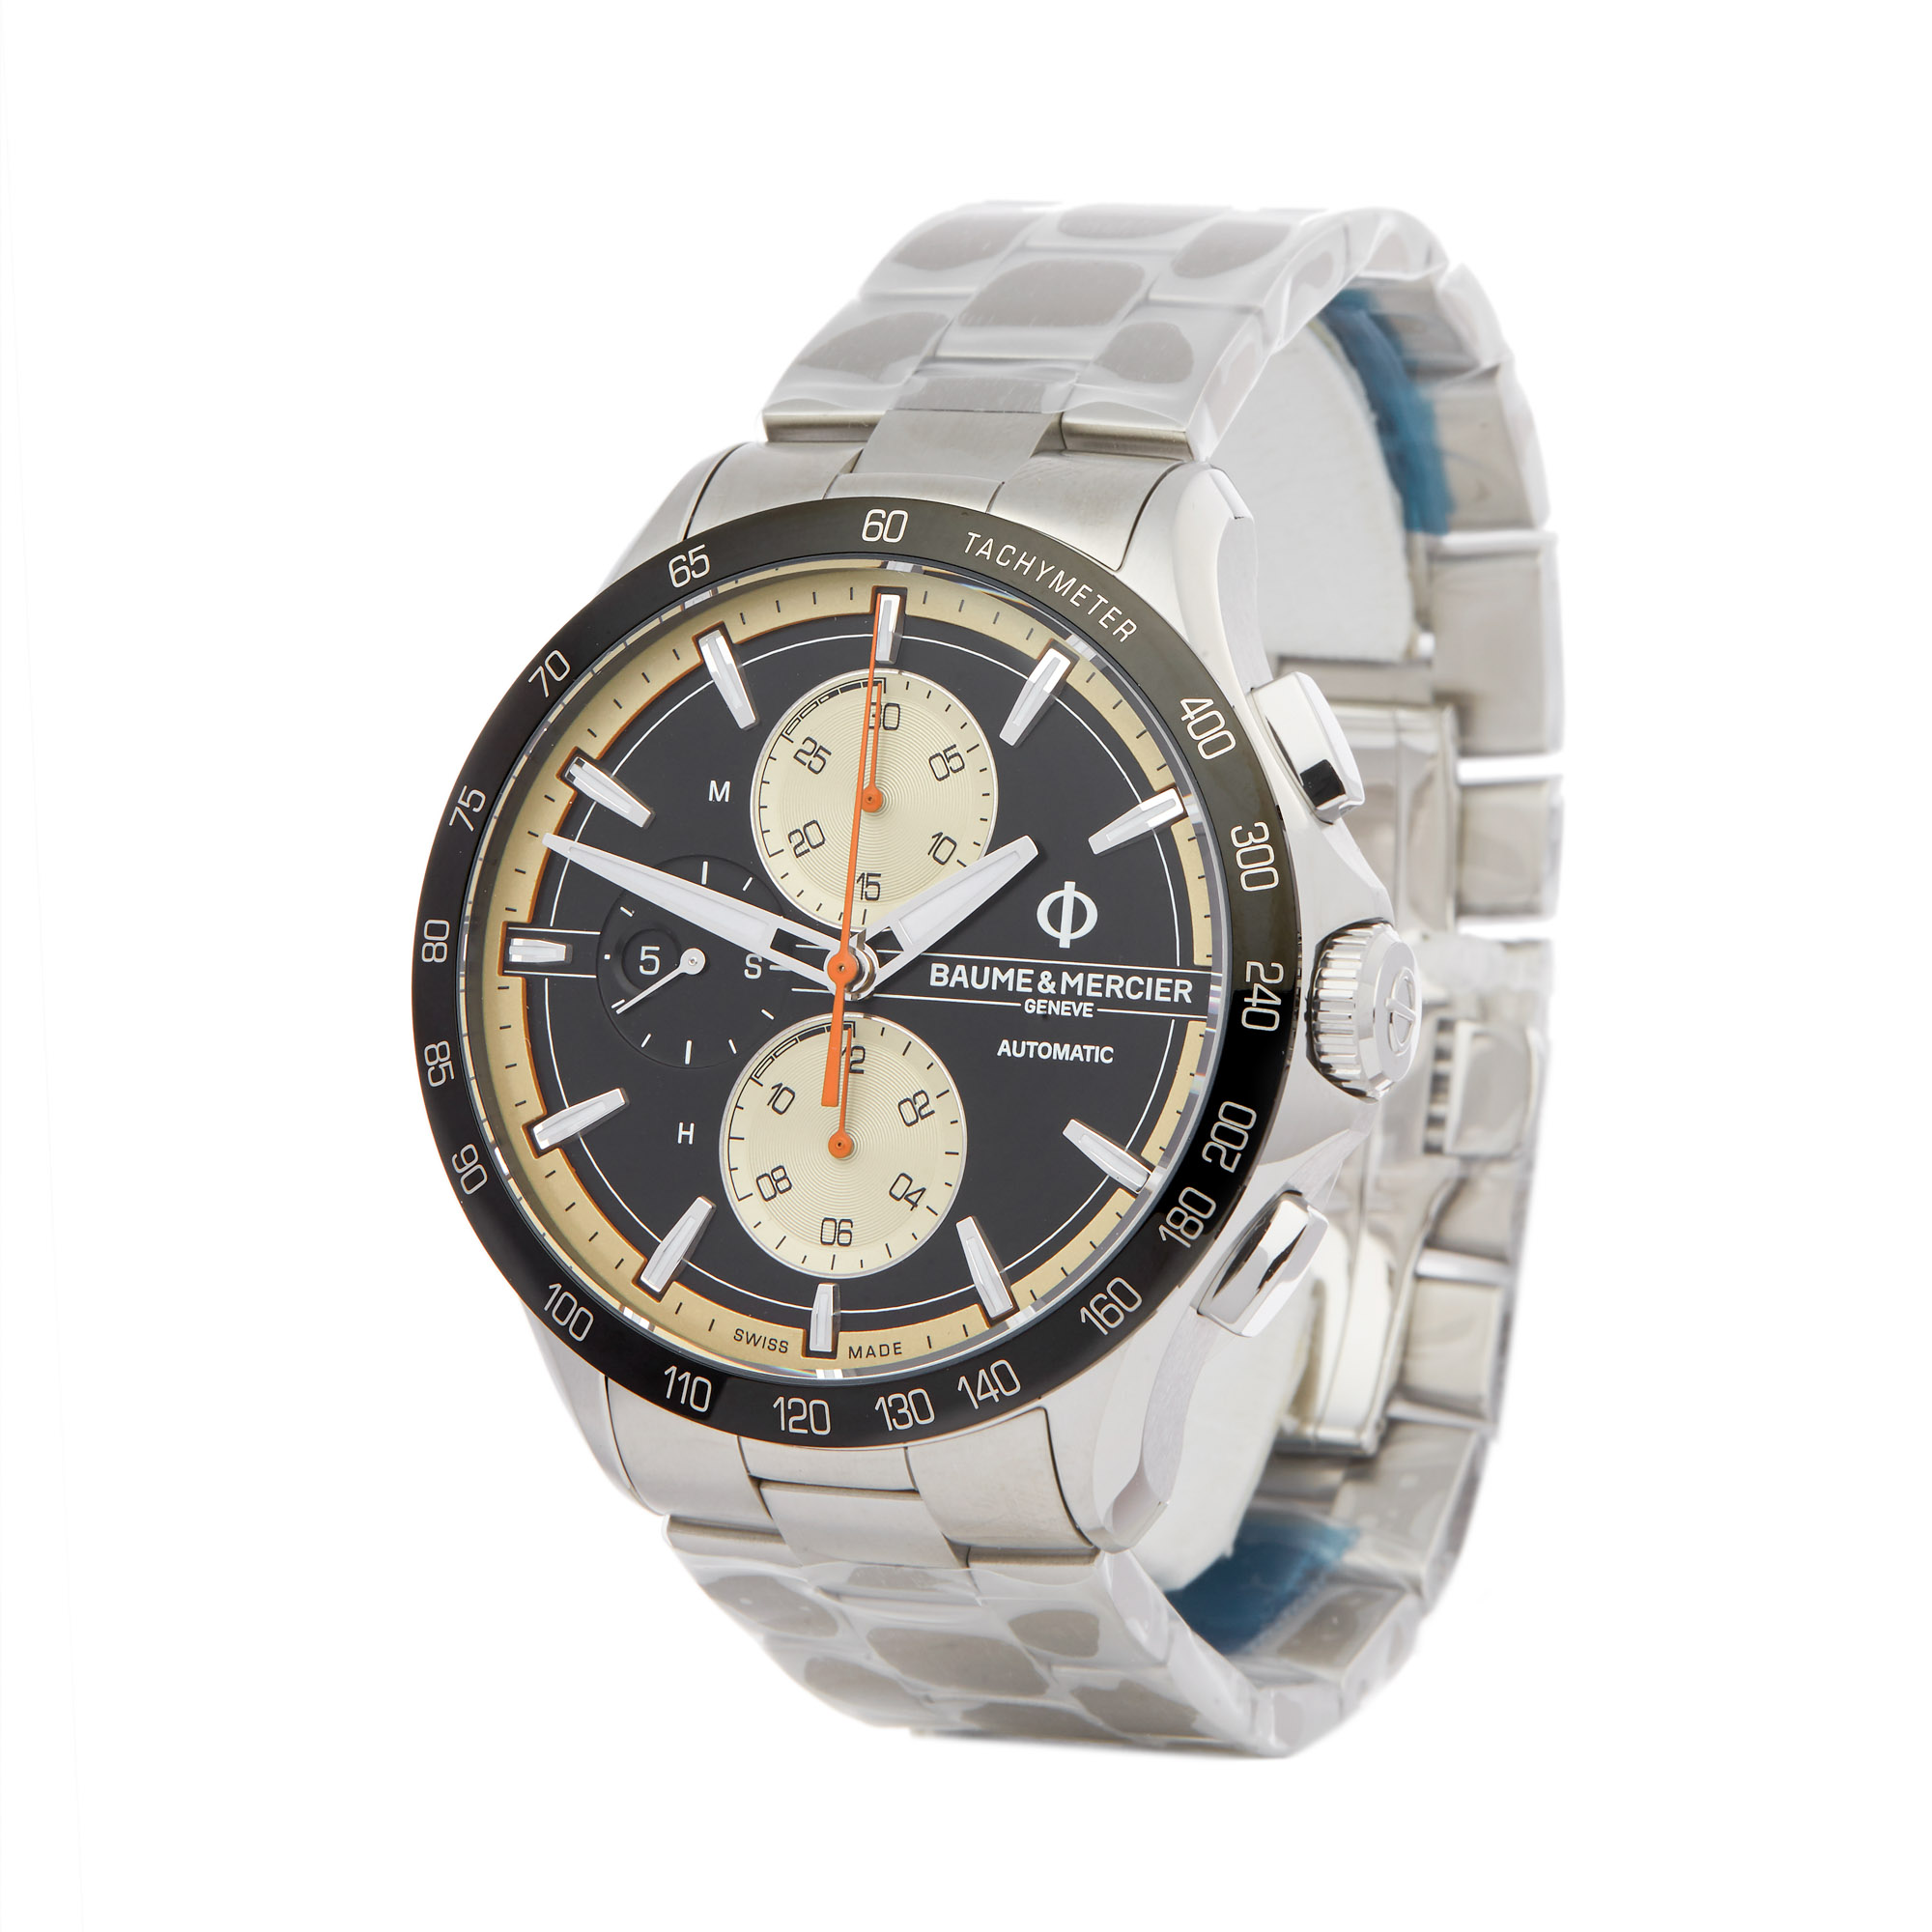 Baume & Mercier Clifton Club M0A10435 Men Stainless Steel Chronograph Watch - Image 8 of 9